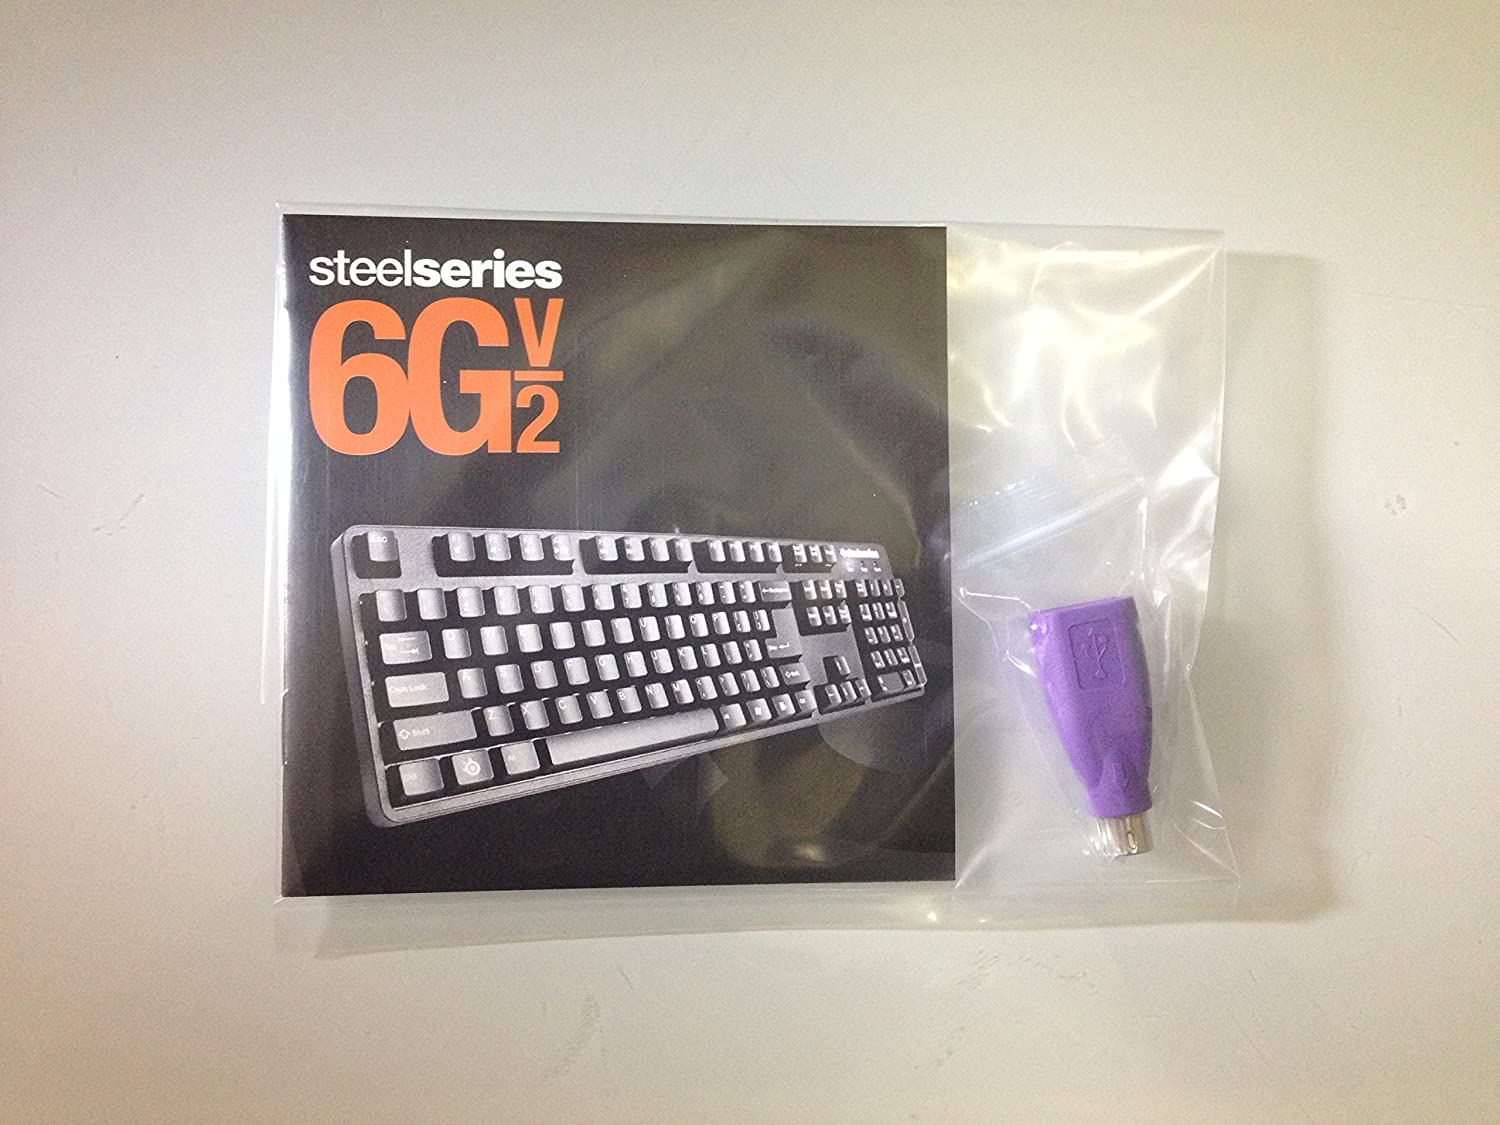 Amazon.com: SteelSeries 6Gv2 Wired Mechanical Gaming Keyboard Spanish Edition: Computers & Accessories